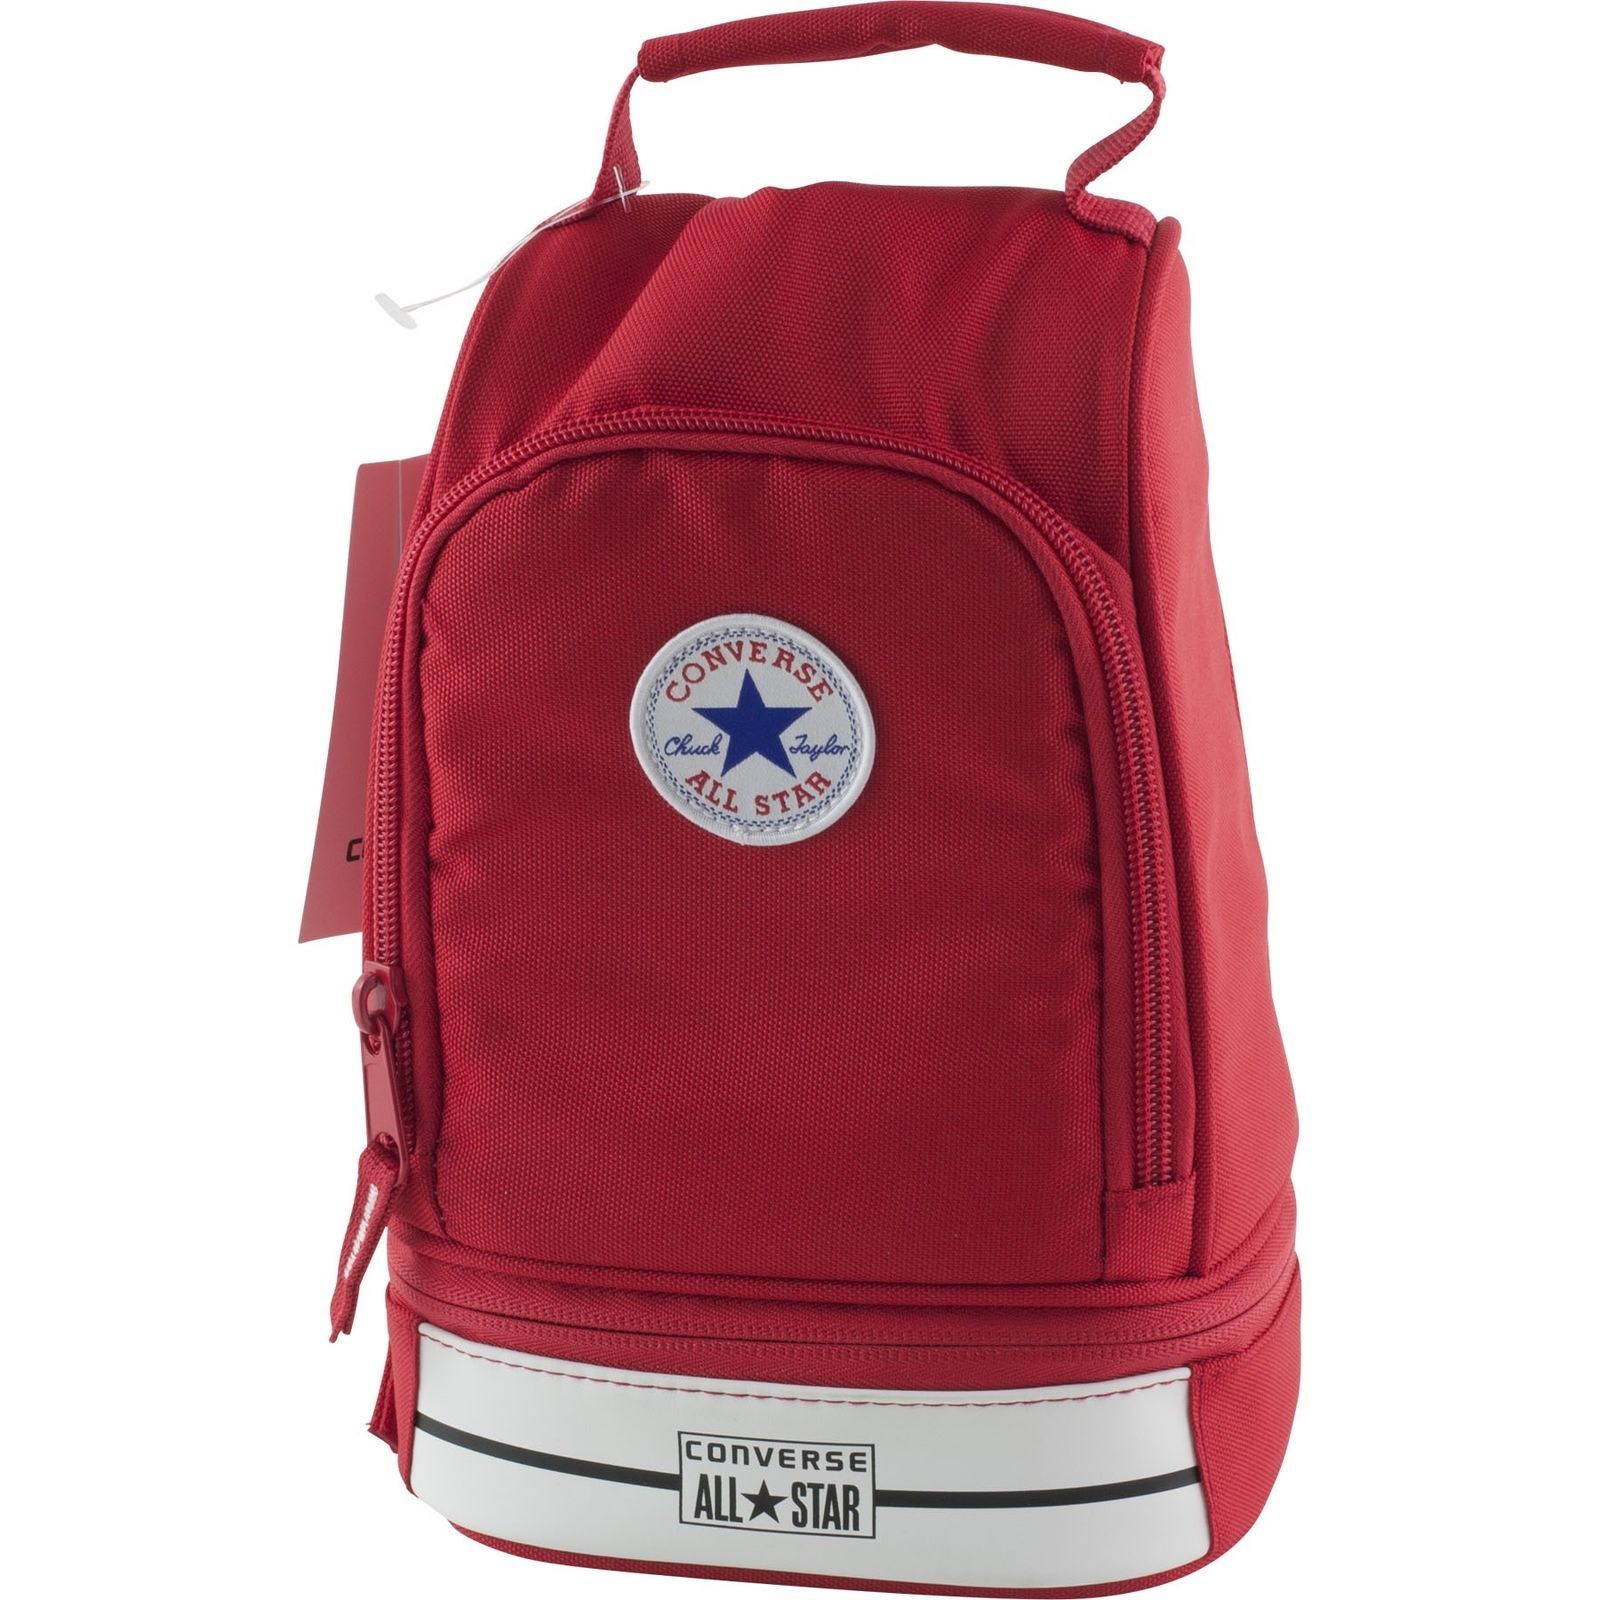 Backpacks and Bags 57882  Converse All Star Dome Soft School Dual Insulated  Lunch Tote Bag 069481e734d3a